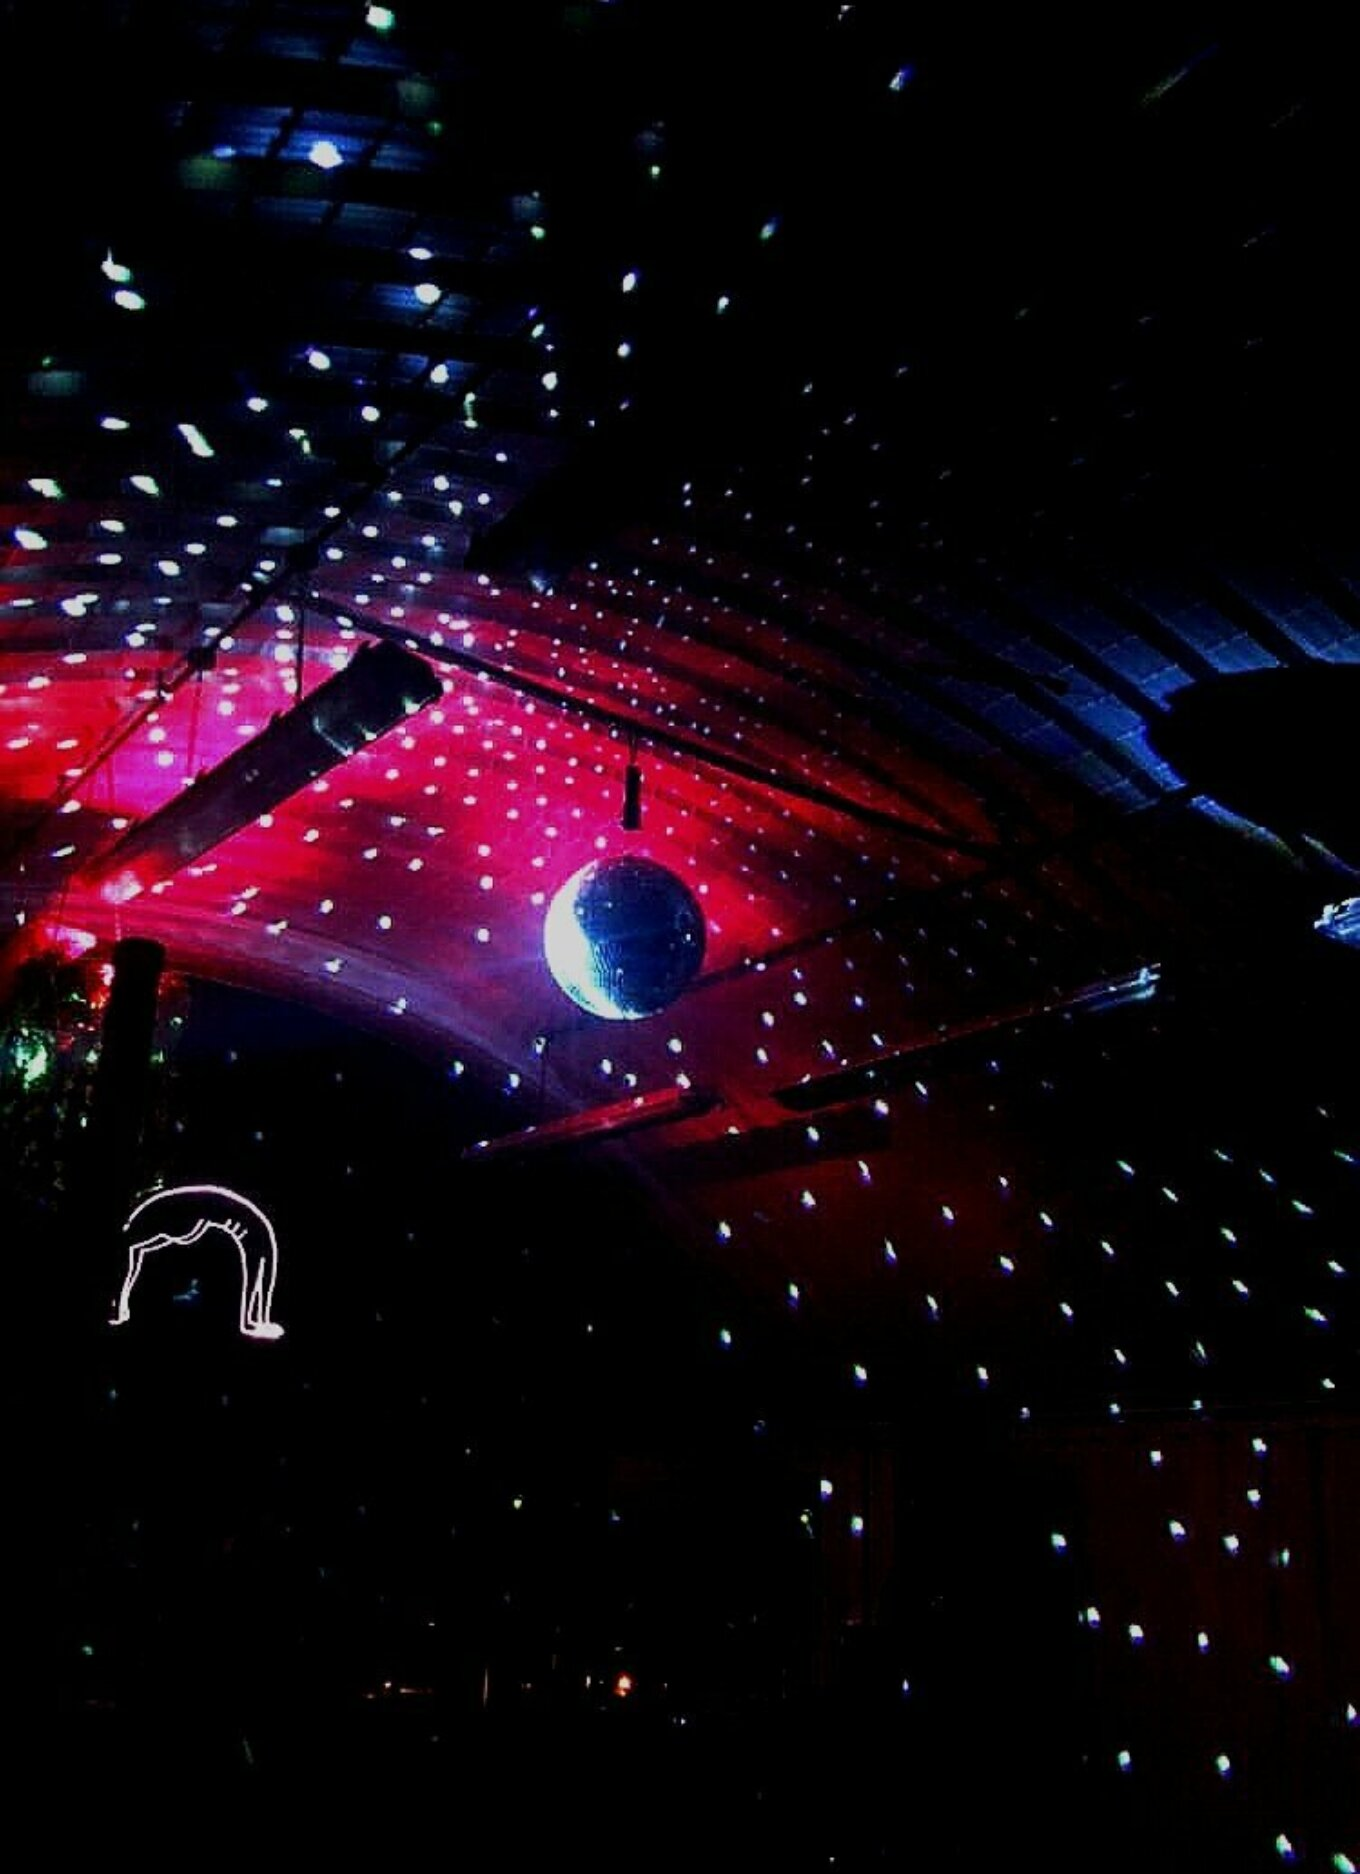 A mirror ball hangs over a darkened dancefloor. The ceiling's brickwork is lit up by pink fluorescent light and white shards of reflecting from the mirror ball.